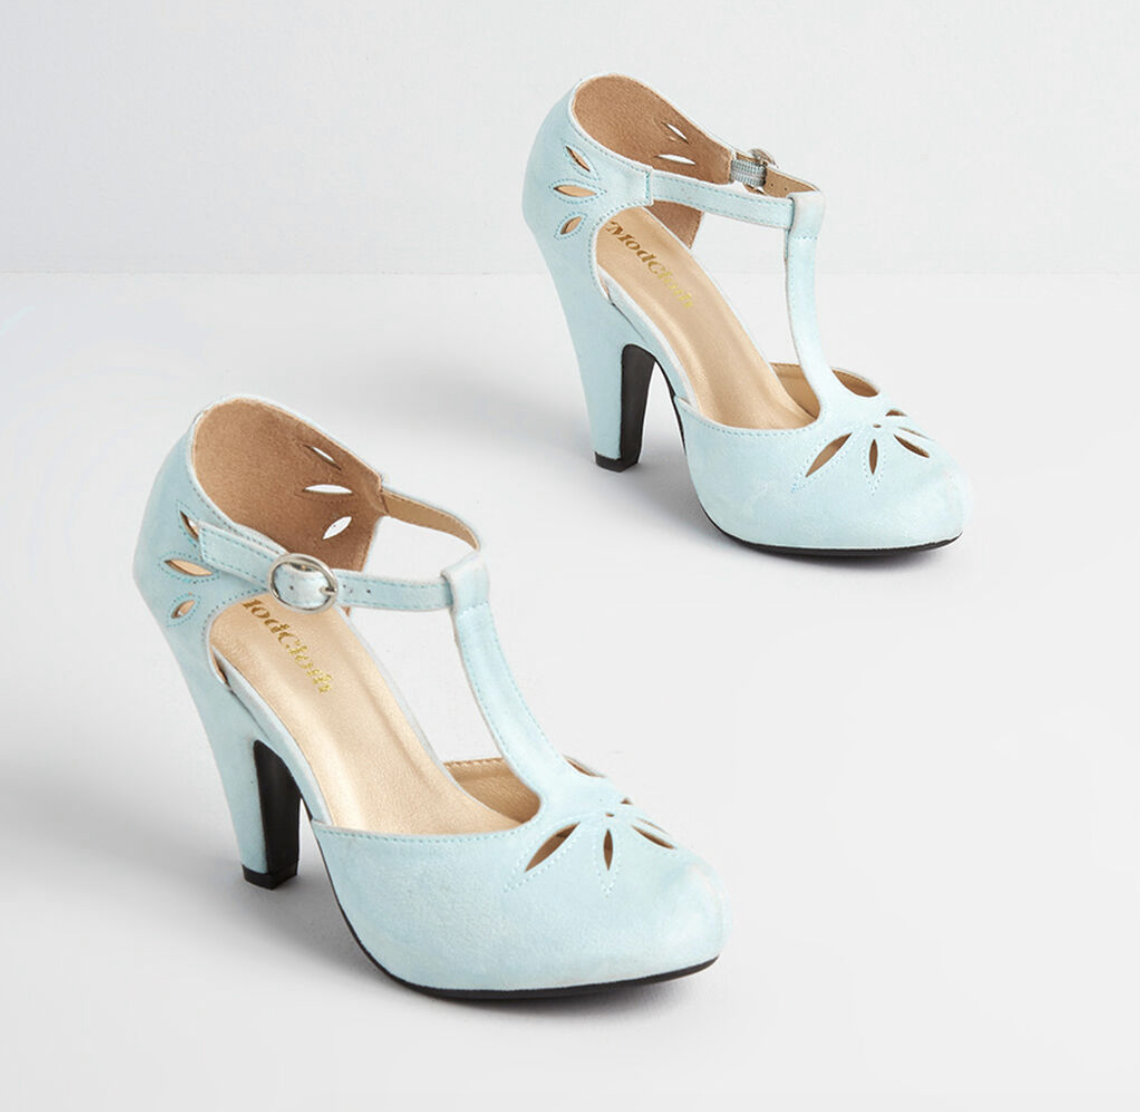 A pair of vintage T-strap high heels